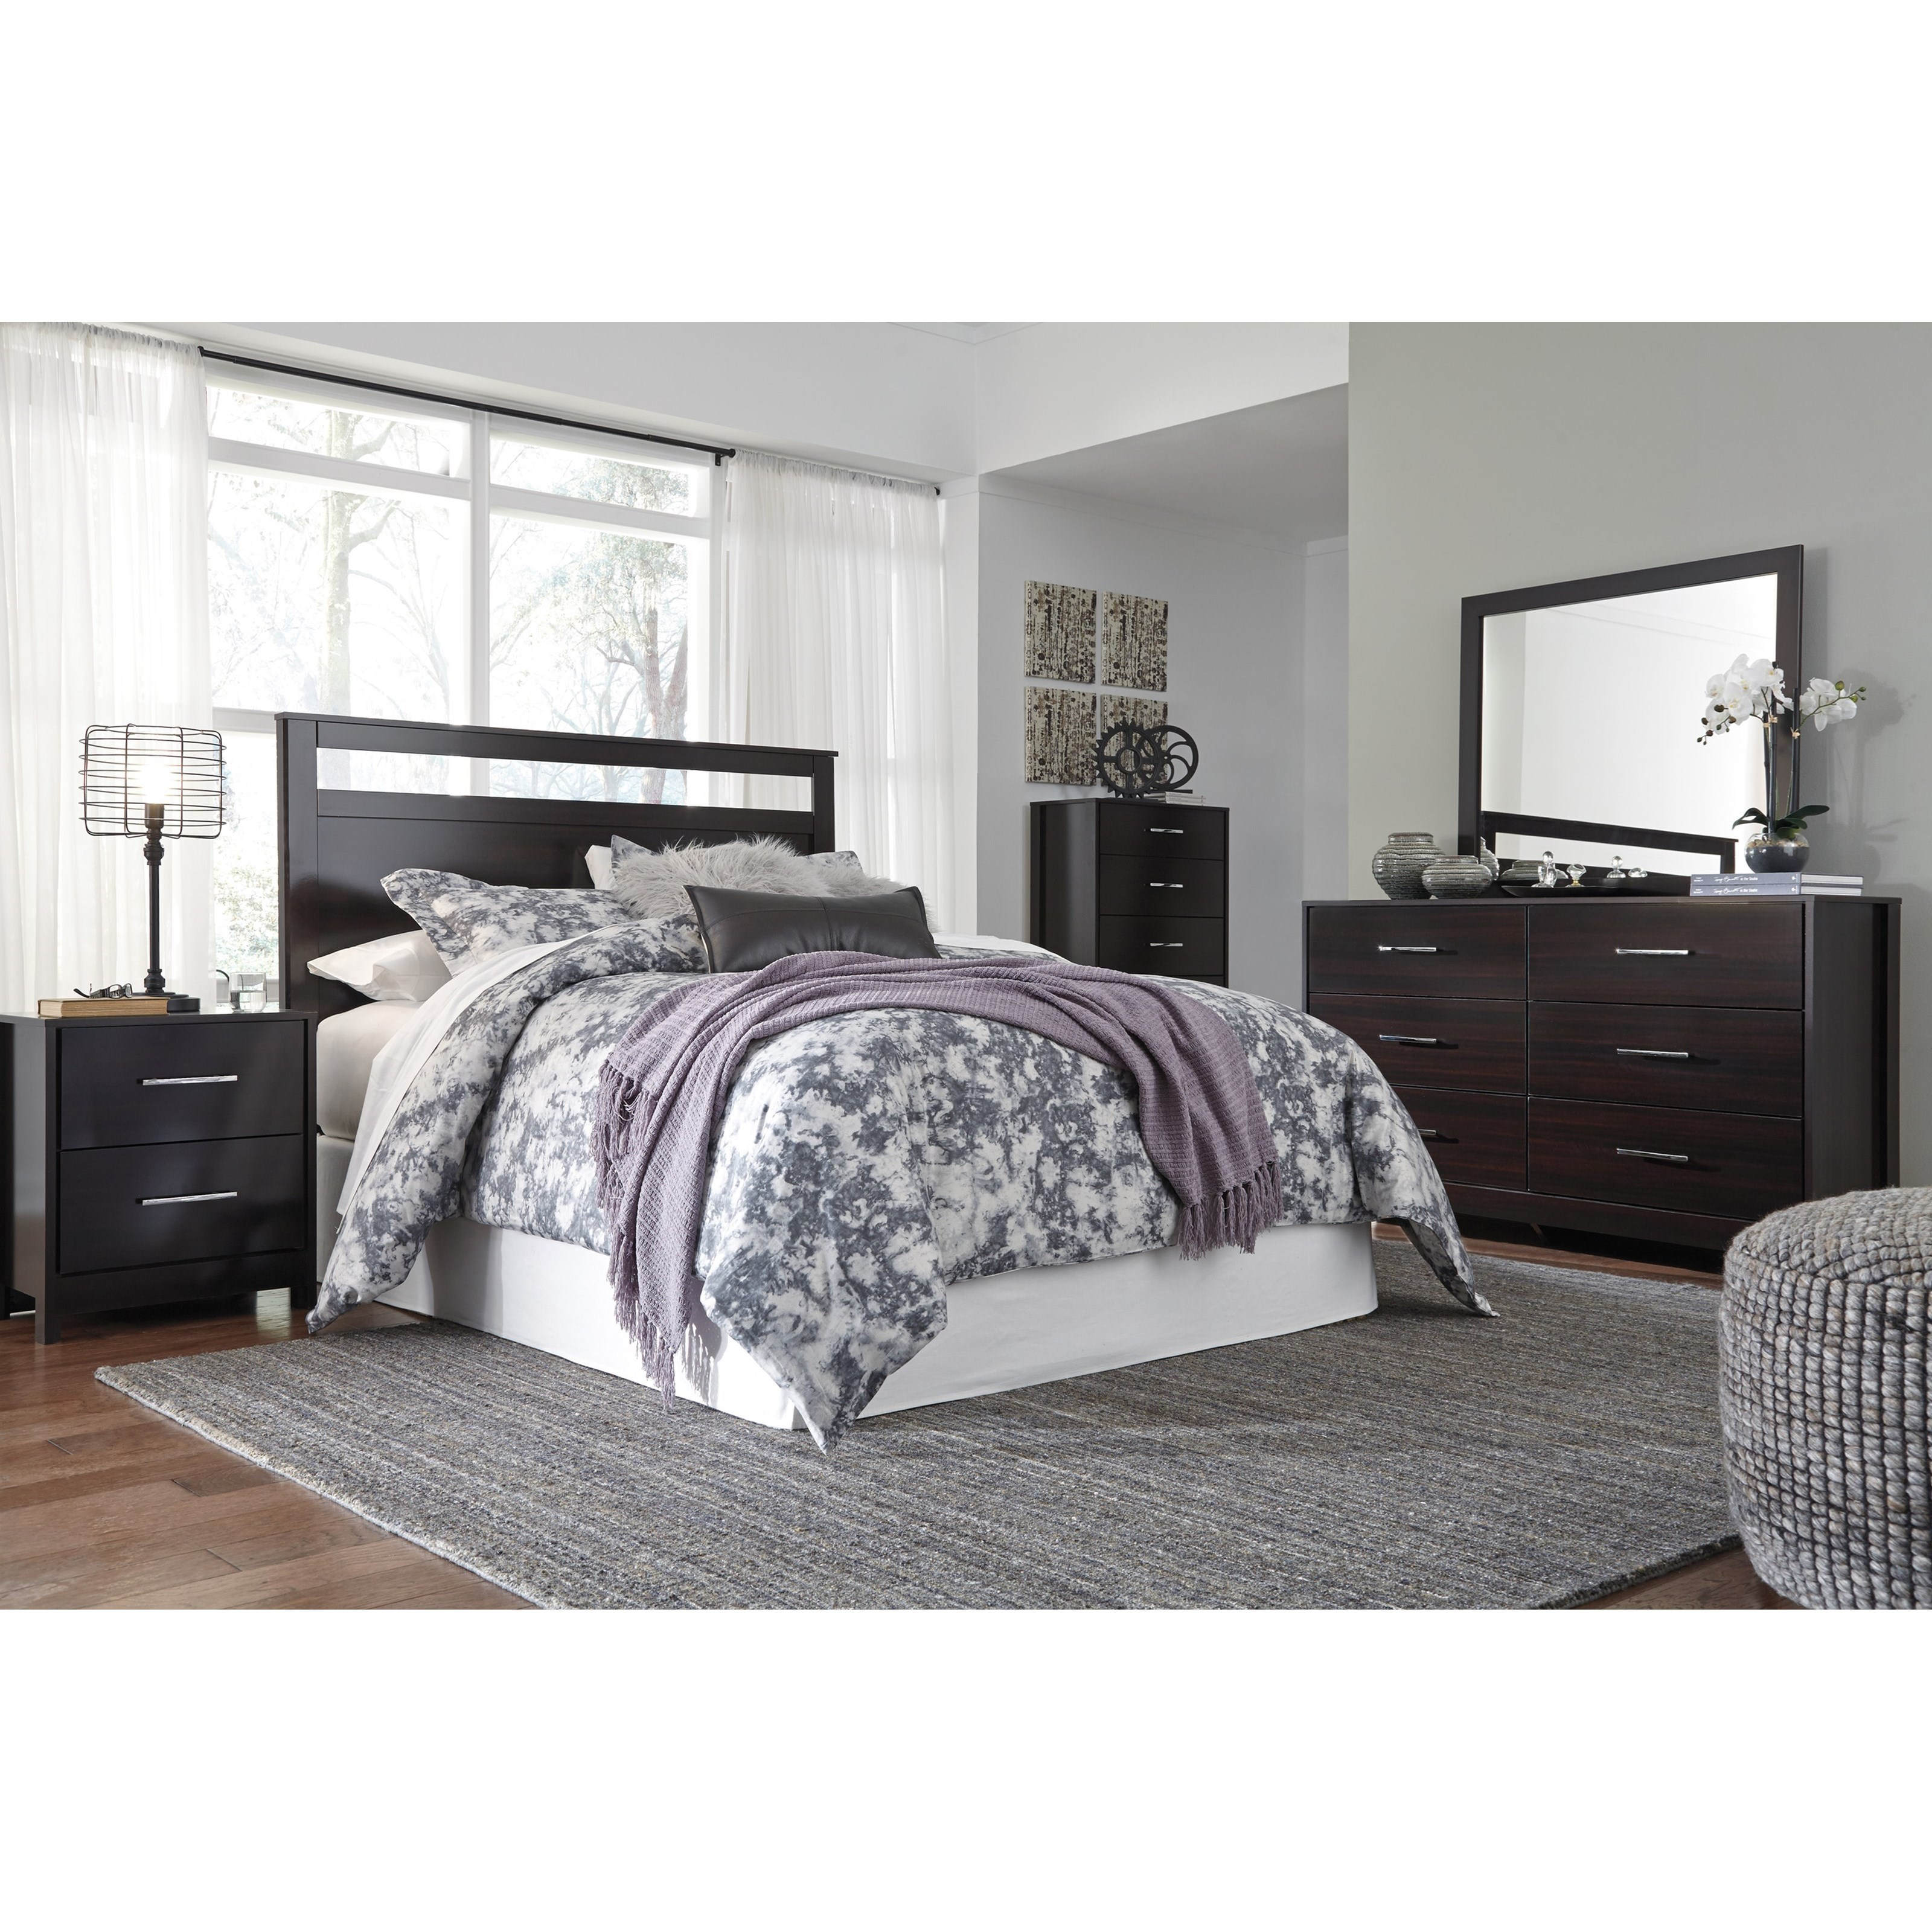 ashley agella queen full bedroom group item number b072 q bedroom